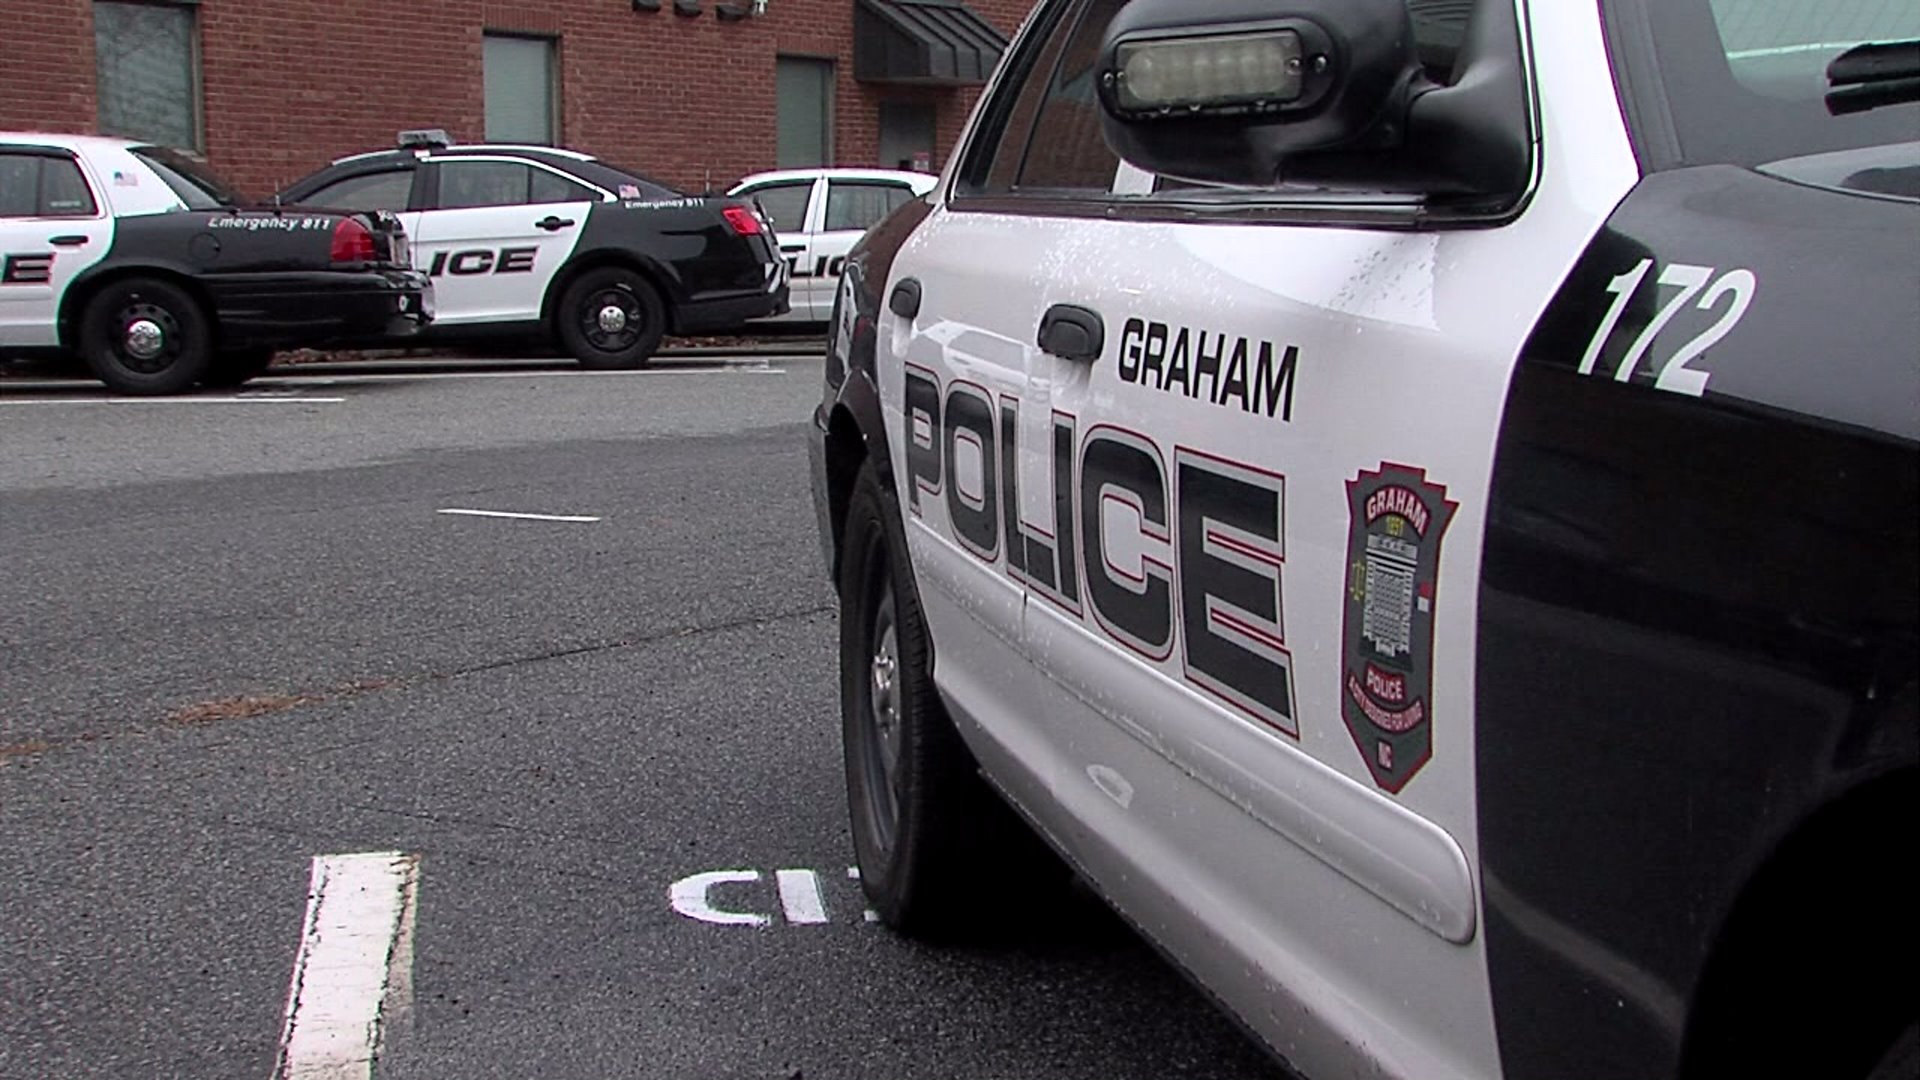 Graham police patrol car (WGHP file photo)